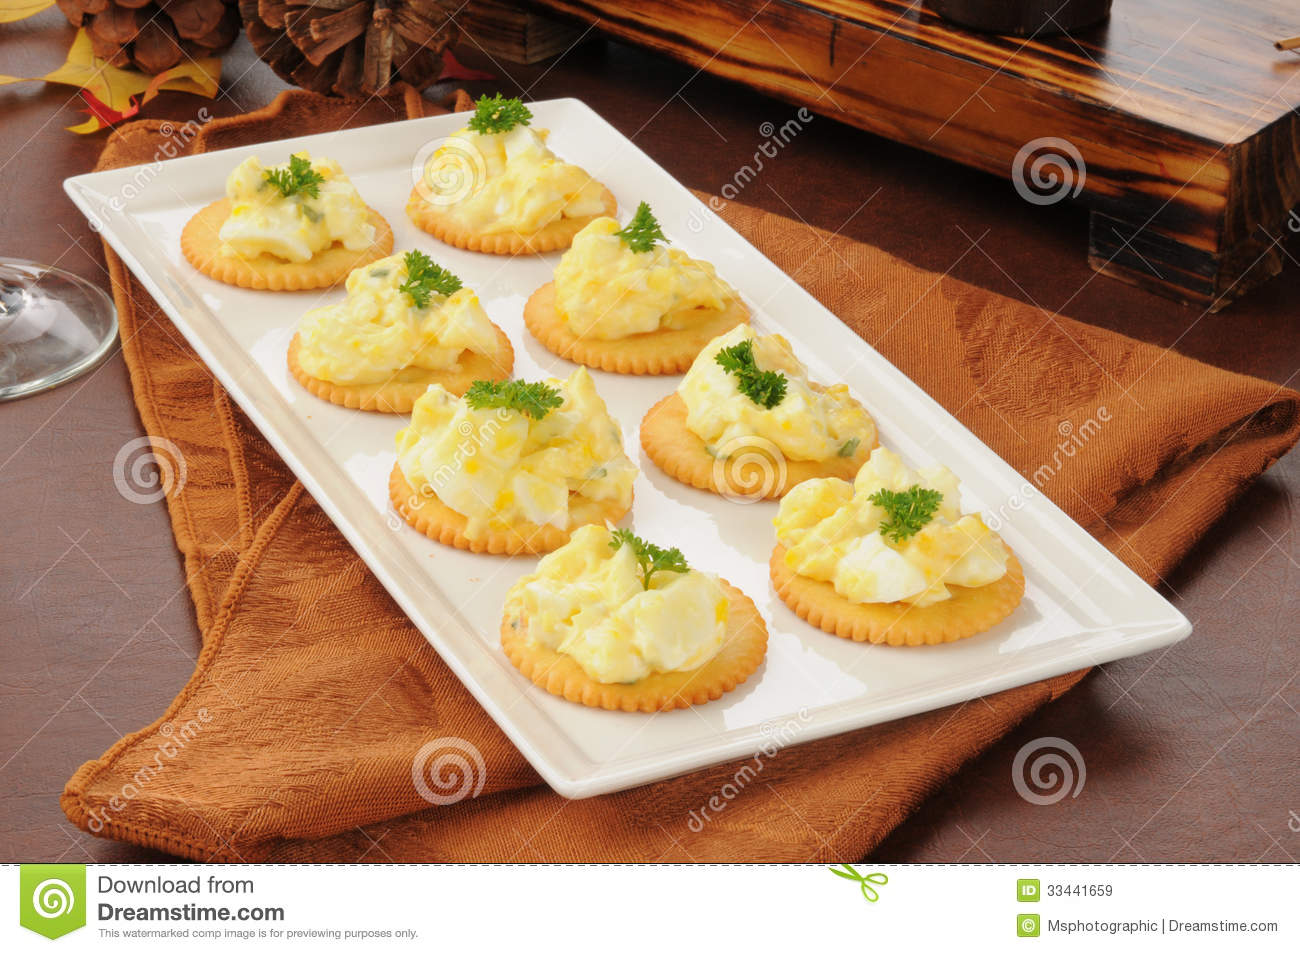 deviled egg appetizers stock image image of wheat horizontal 33441659. Black Bedroom Furniture Sets. Home Design Ideas